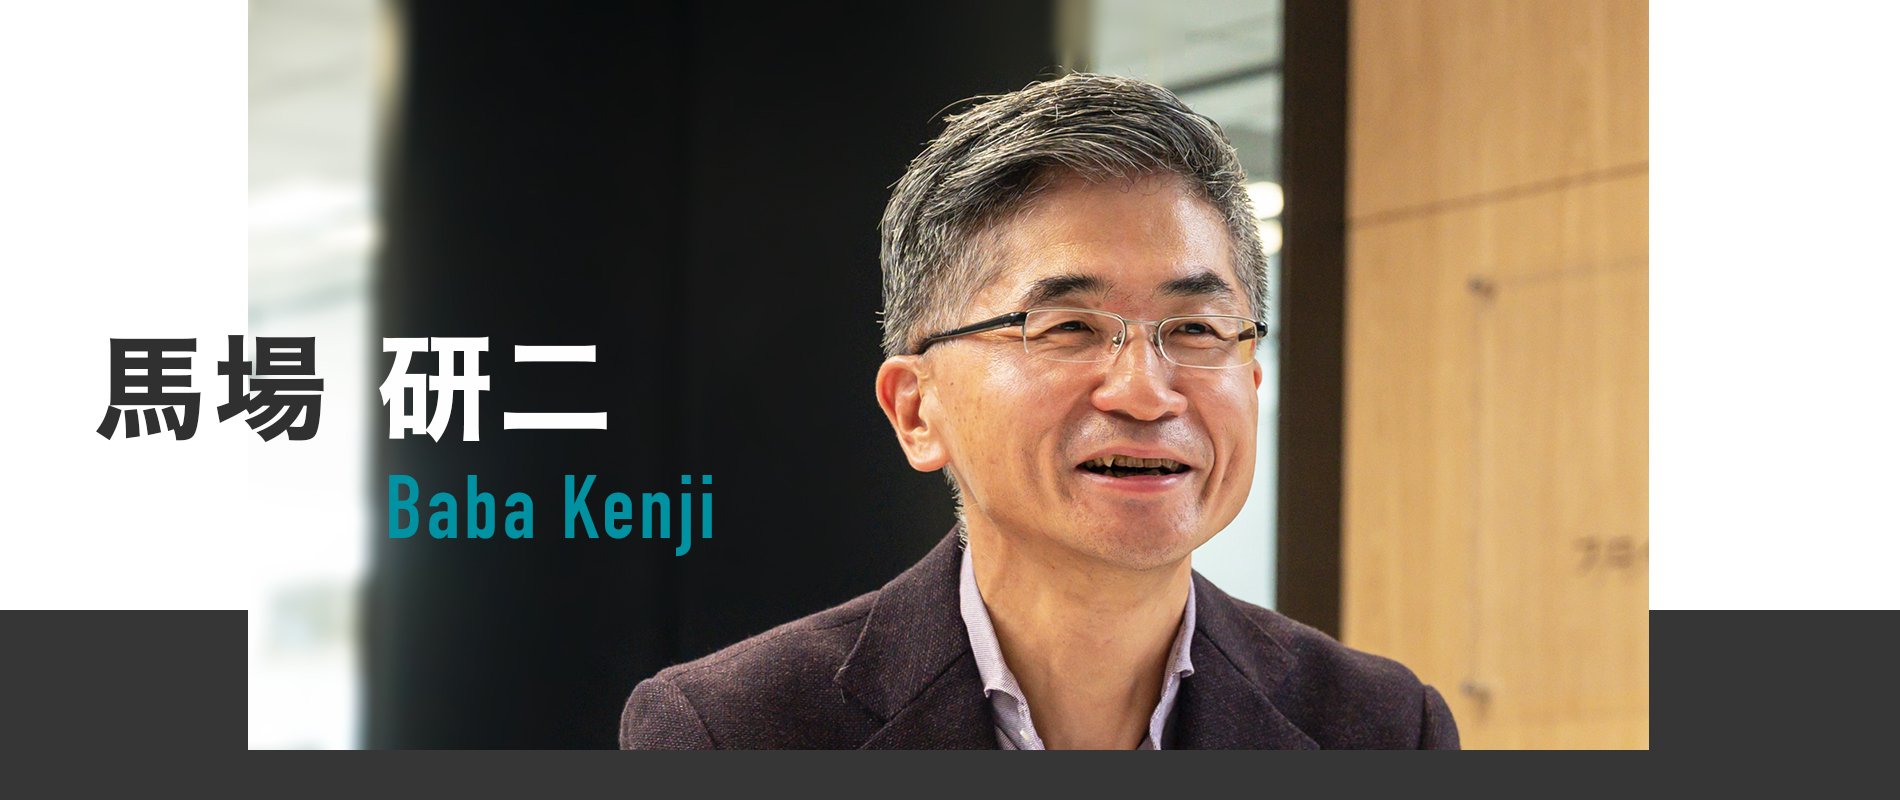 Image on Kenji Baba's site.